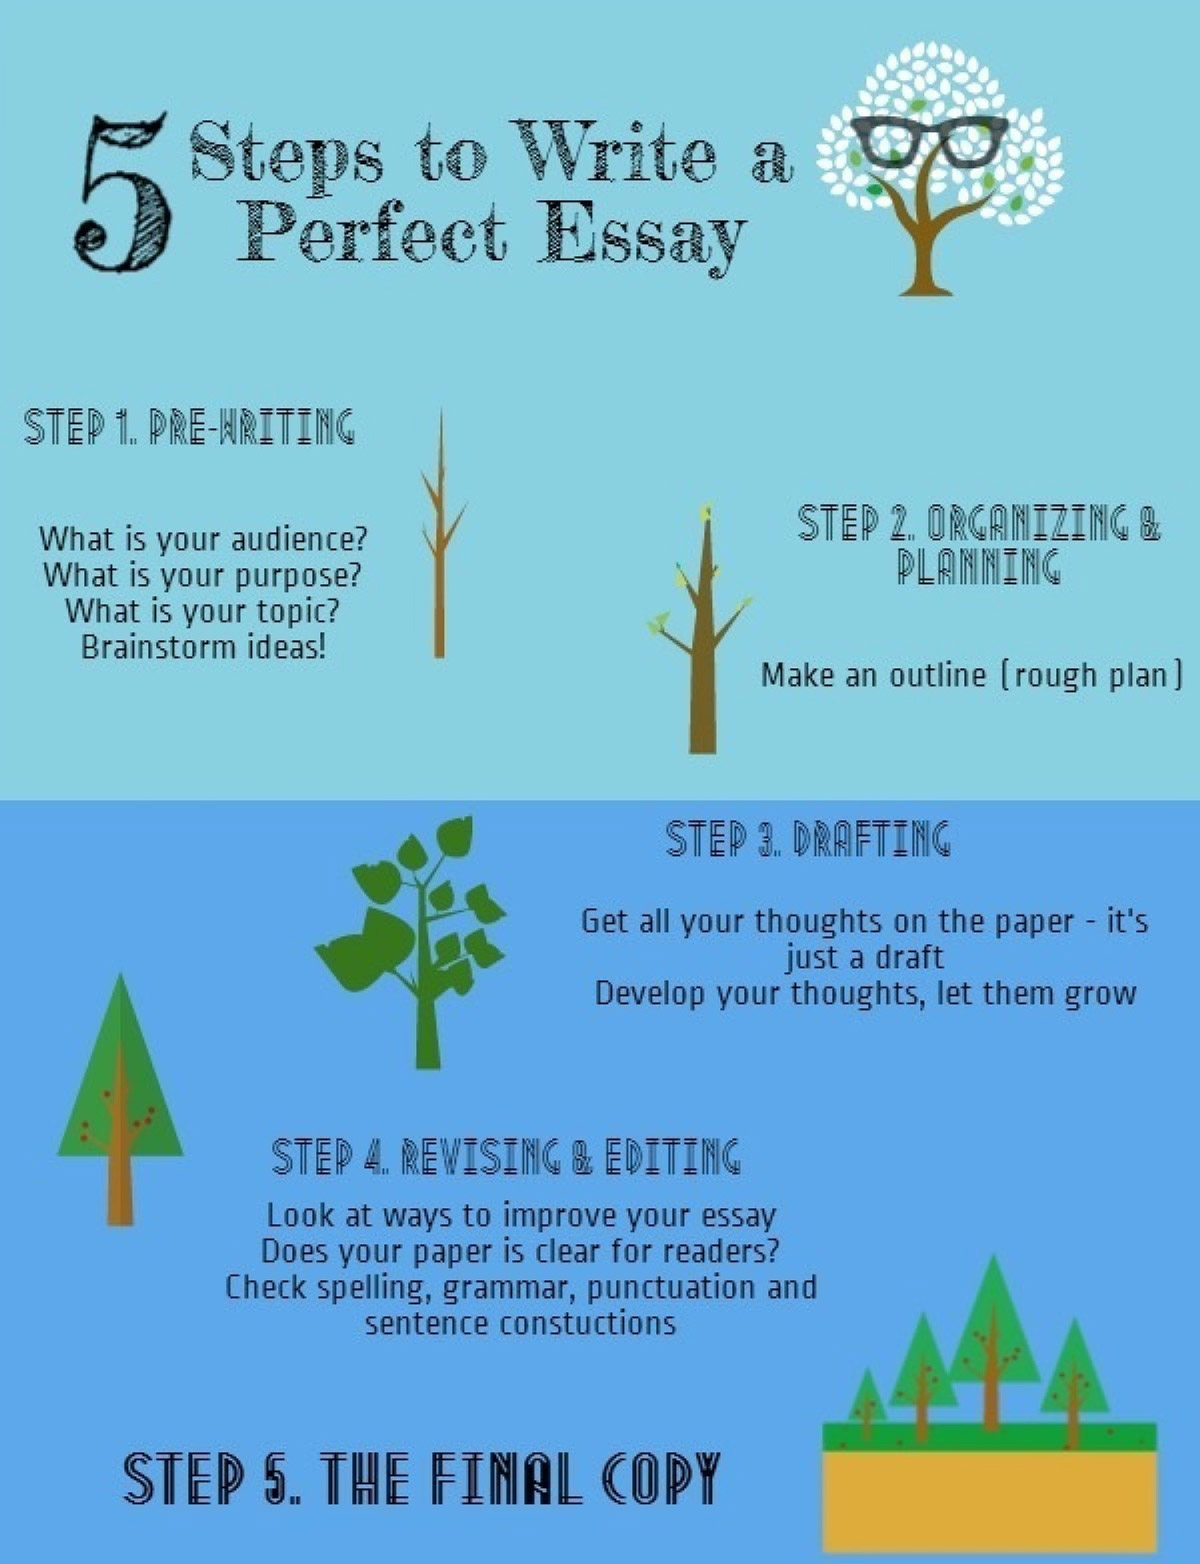 Make Up Essay How To Essay Writing Service  Steps To Write A Perfect Essay Persuasive Essay Abortion also Summer Reading Essay How To Write An Excellent Essay How To Essay Writing Service How To  Book Essay